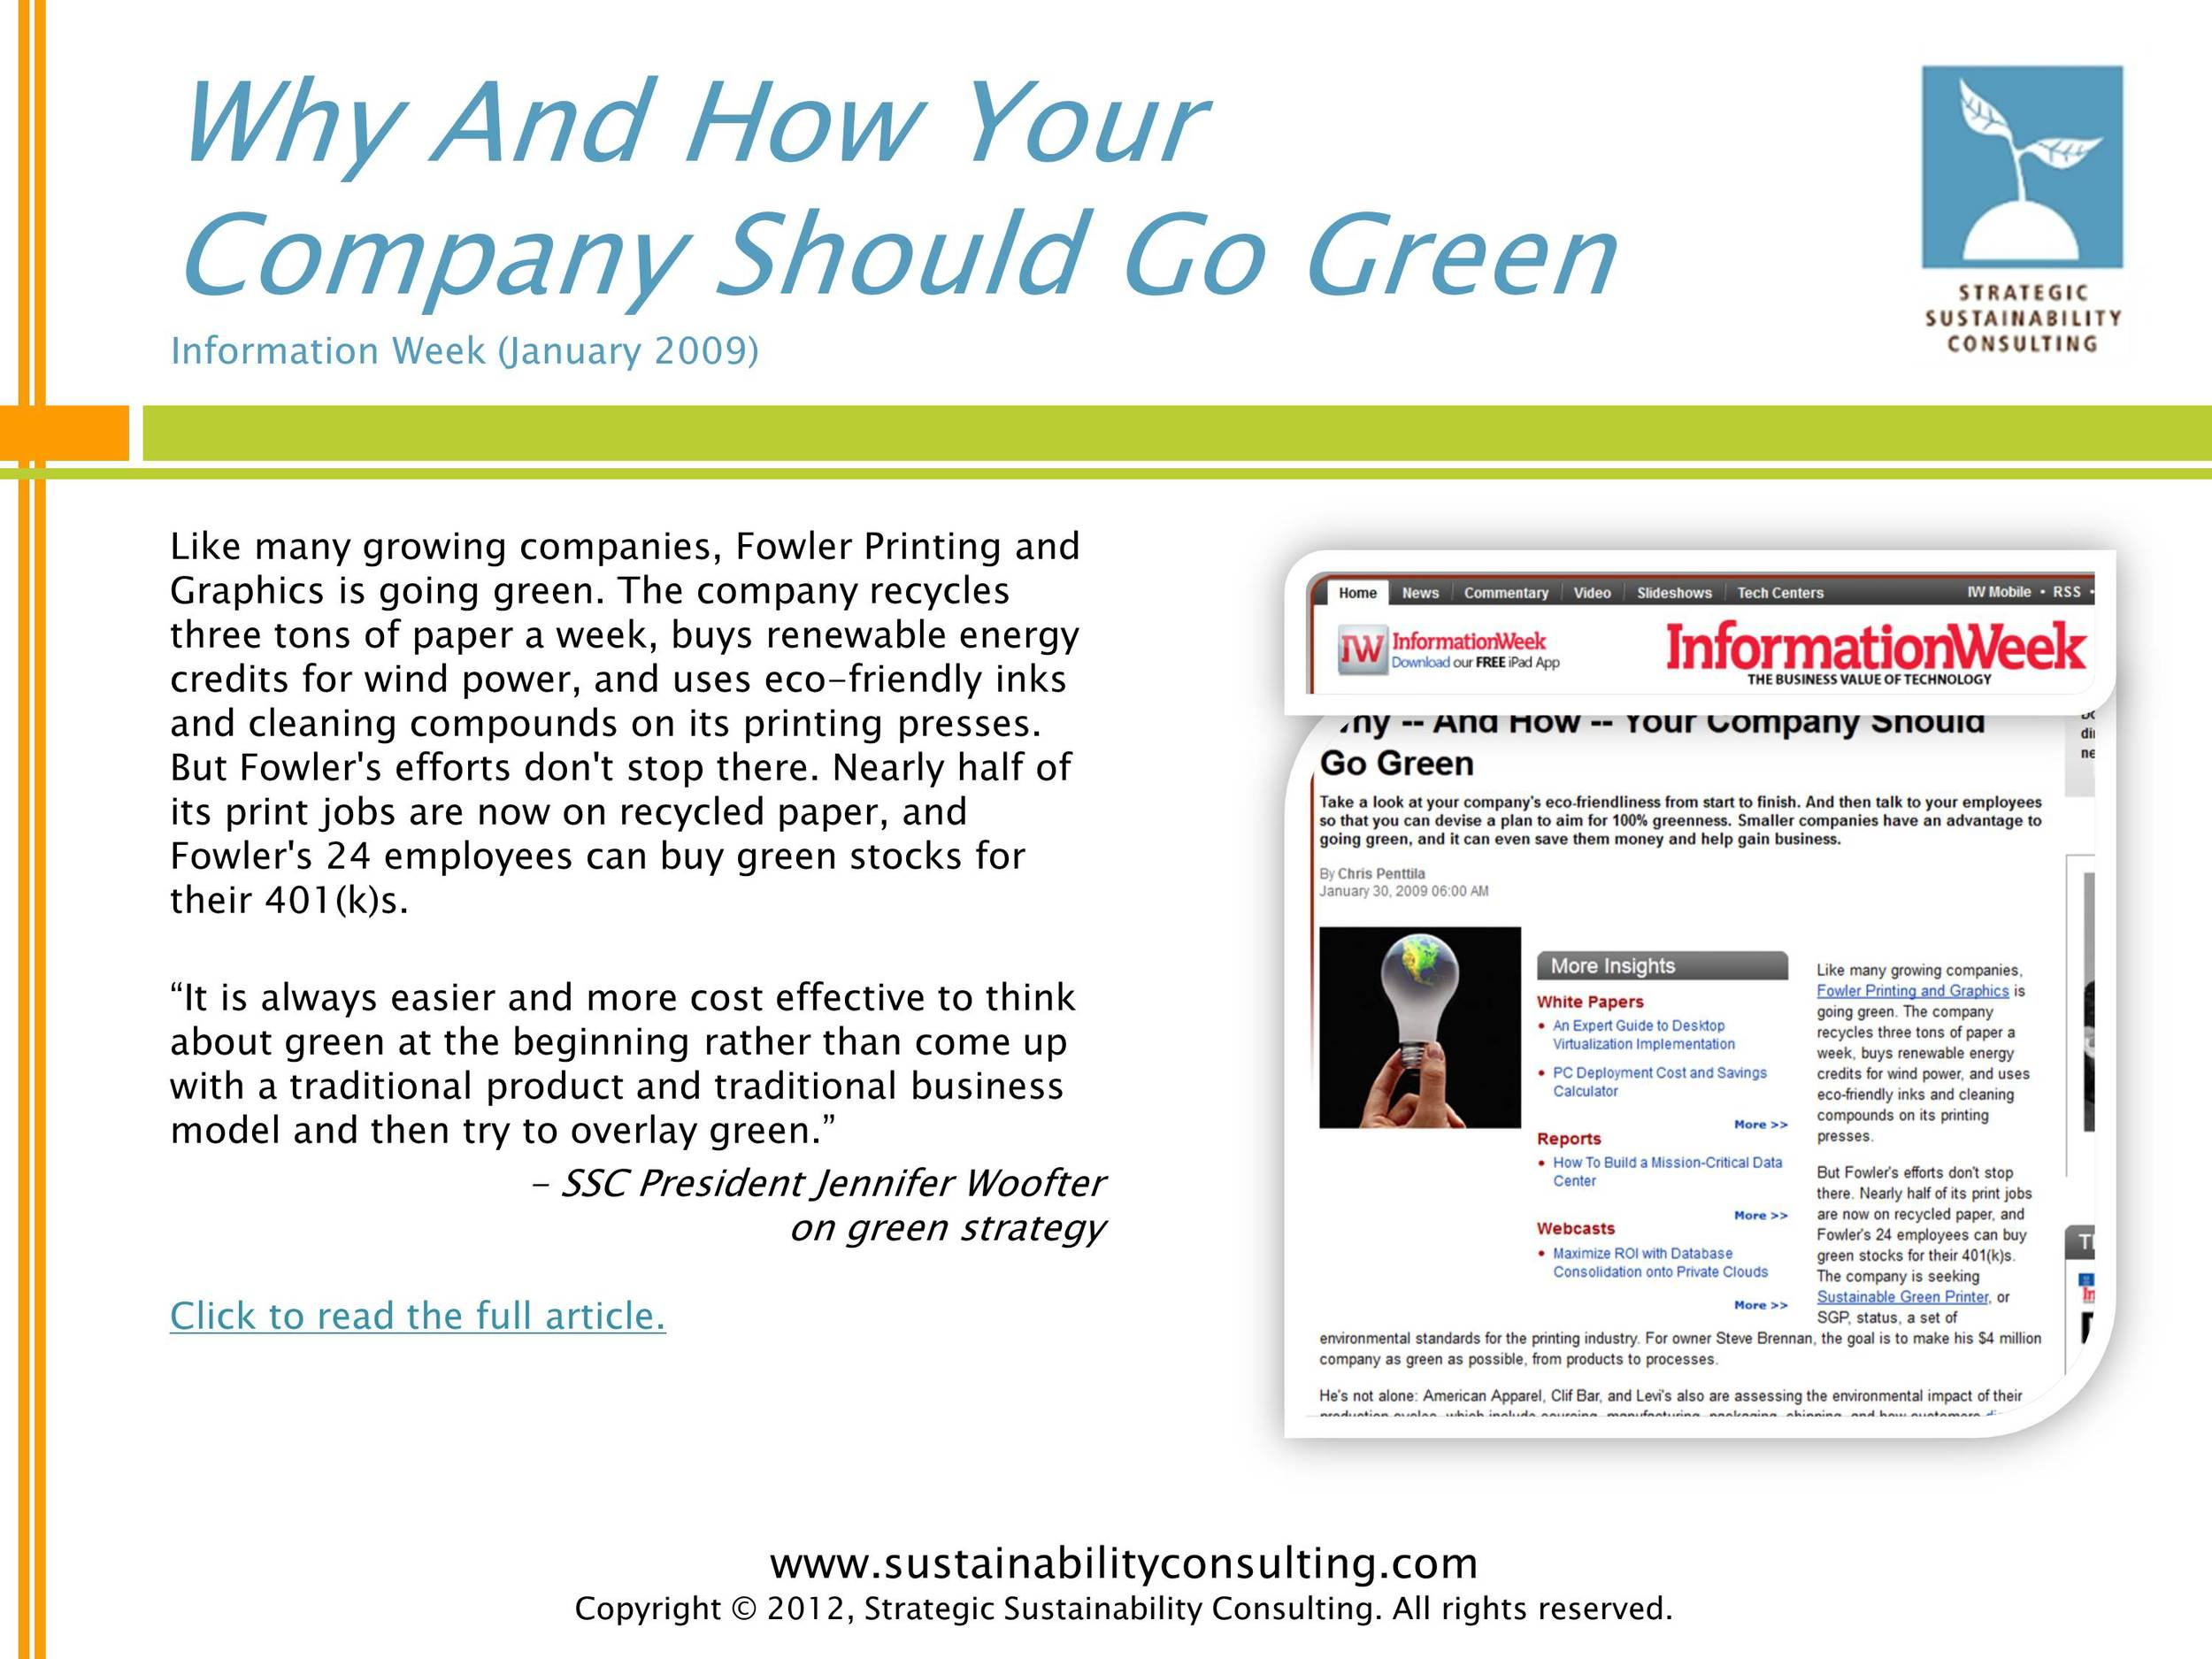 Why And How Your Company Should Go Green